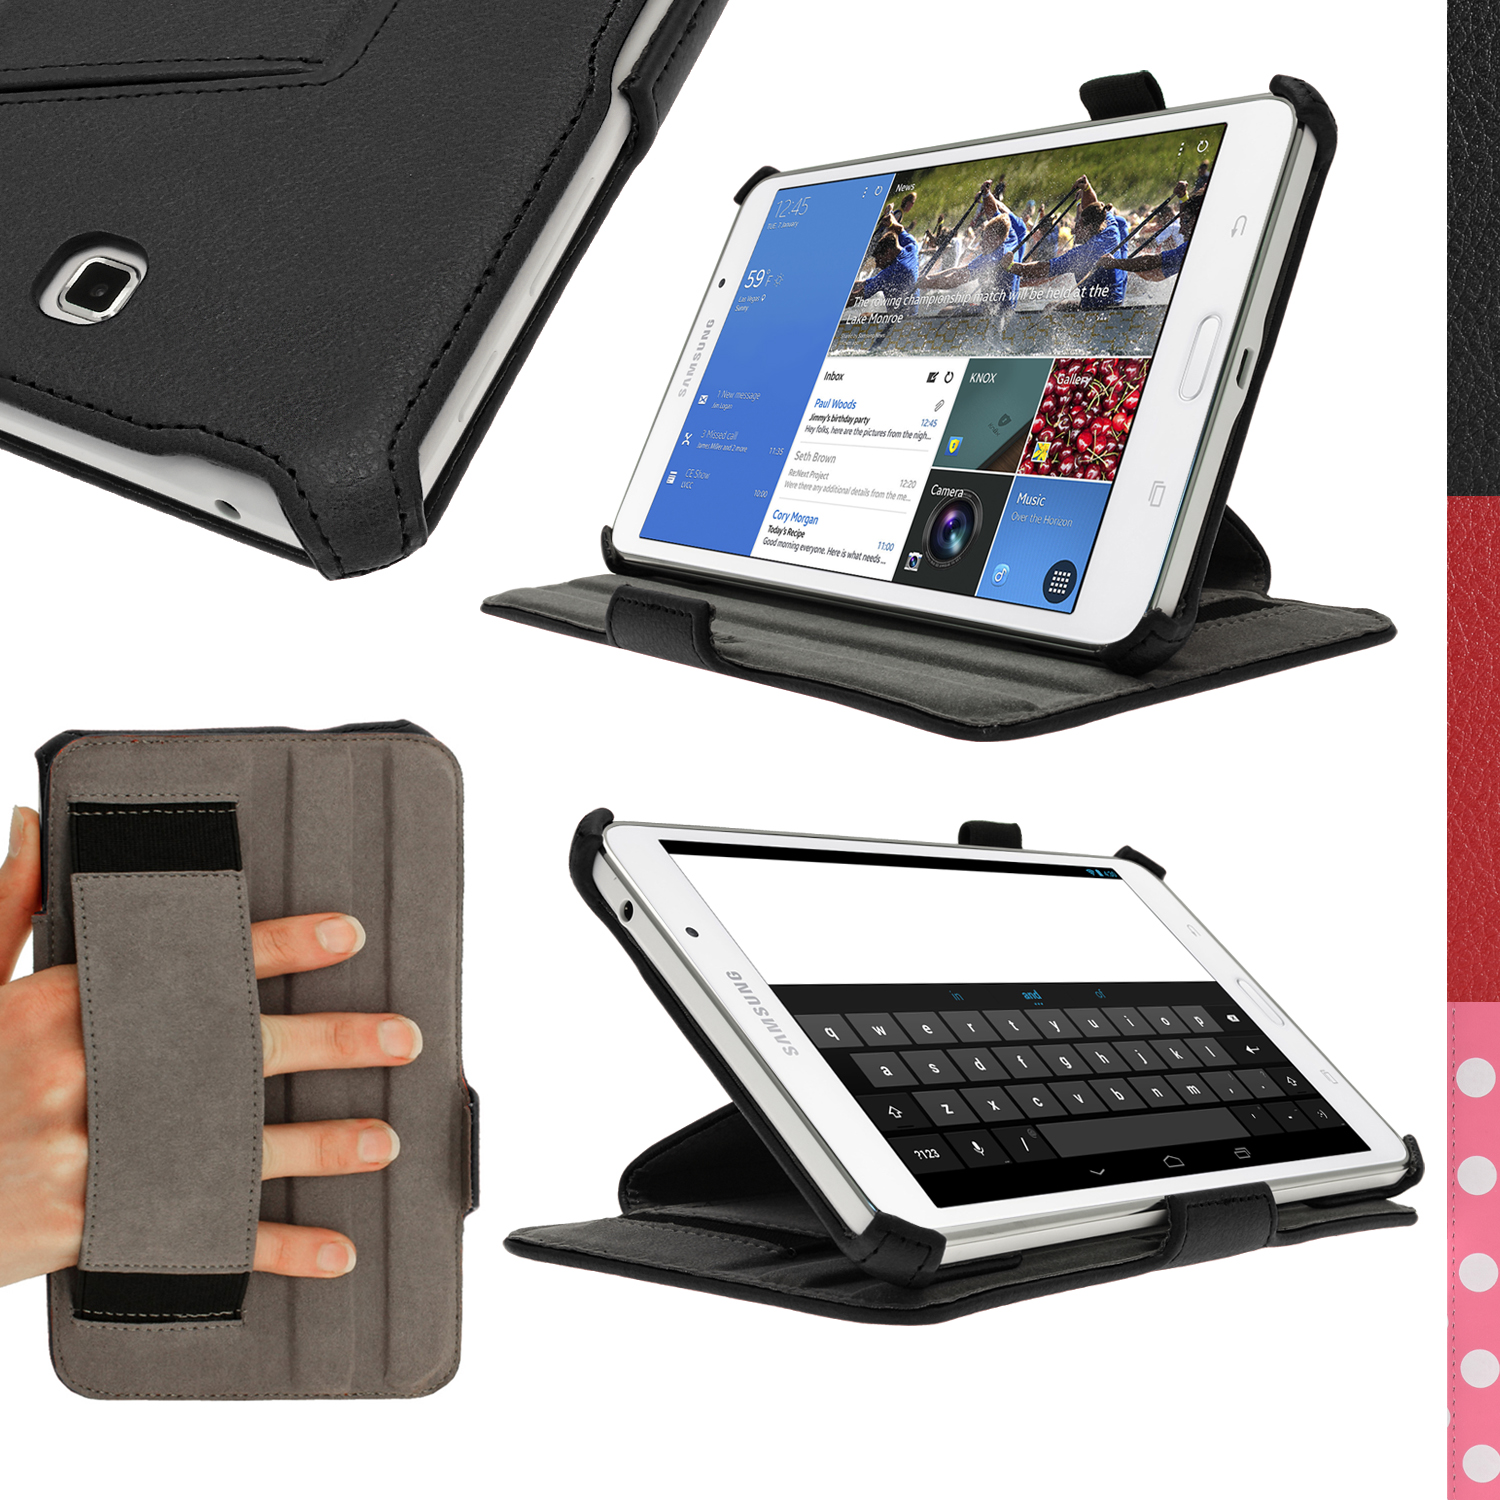 timeless design 2f434 78622 Details about PU Leather Stand Folio Case for Samsung Galaxy Tab 4 8